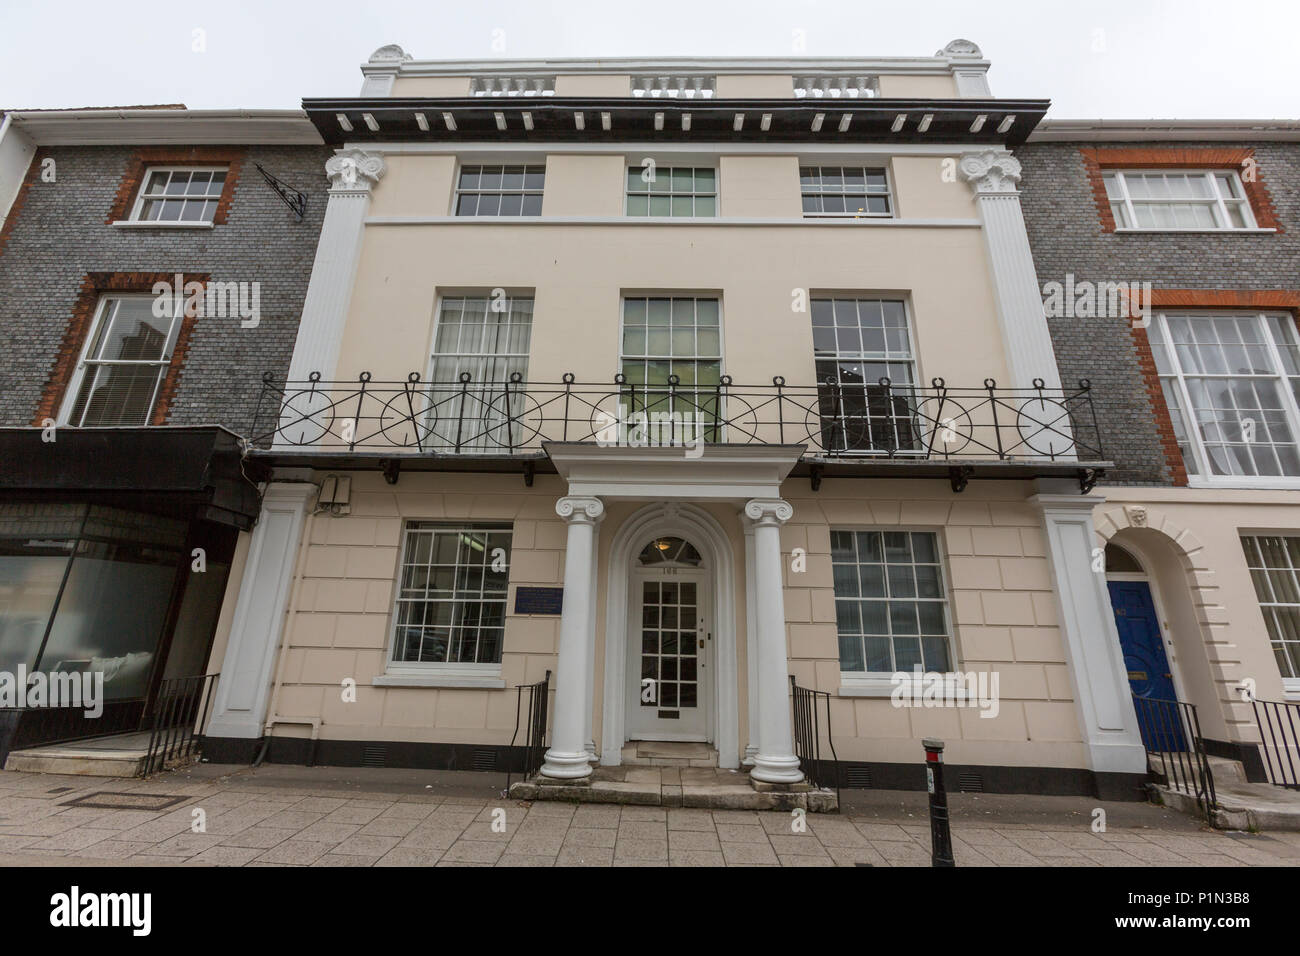 Gideon Mantell house 166 High Street, Lewes, East Sussex, England, UK - Stock Image